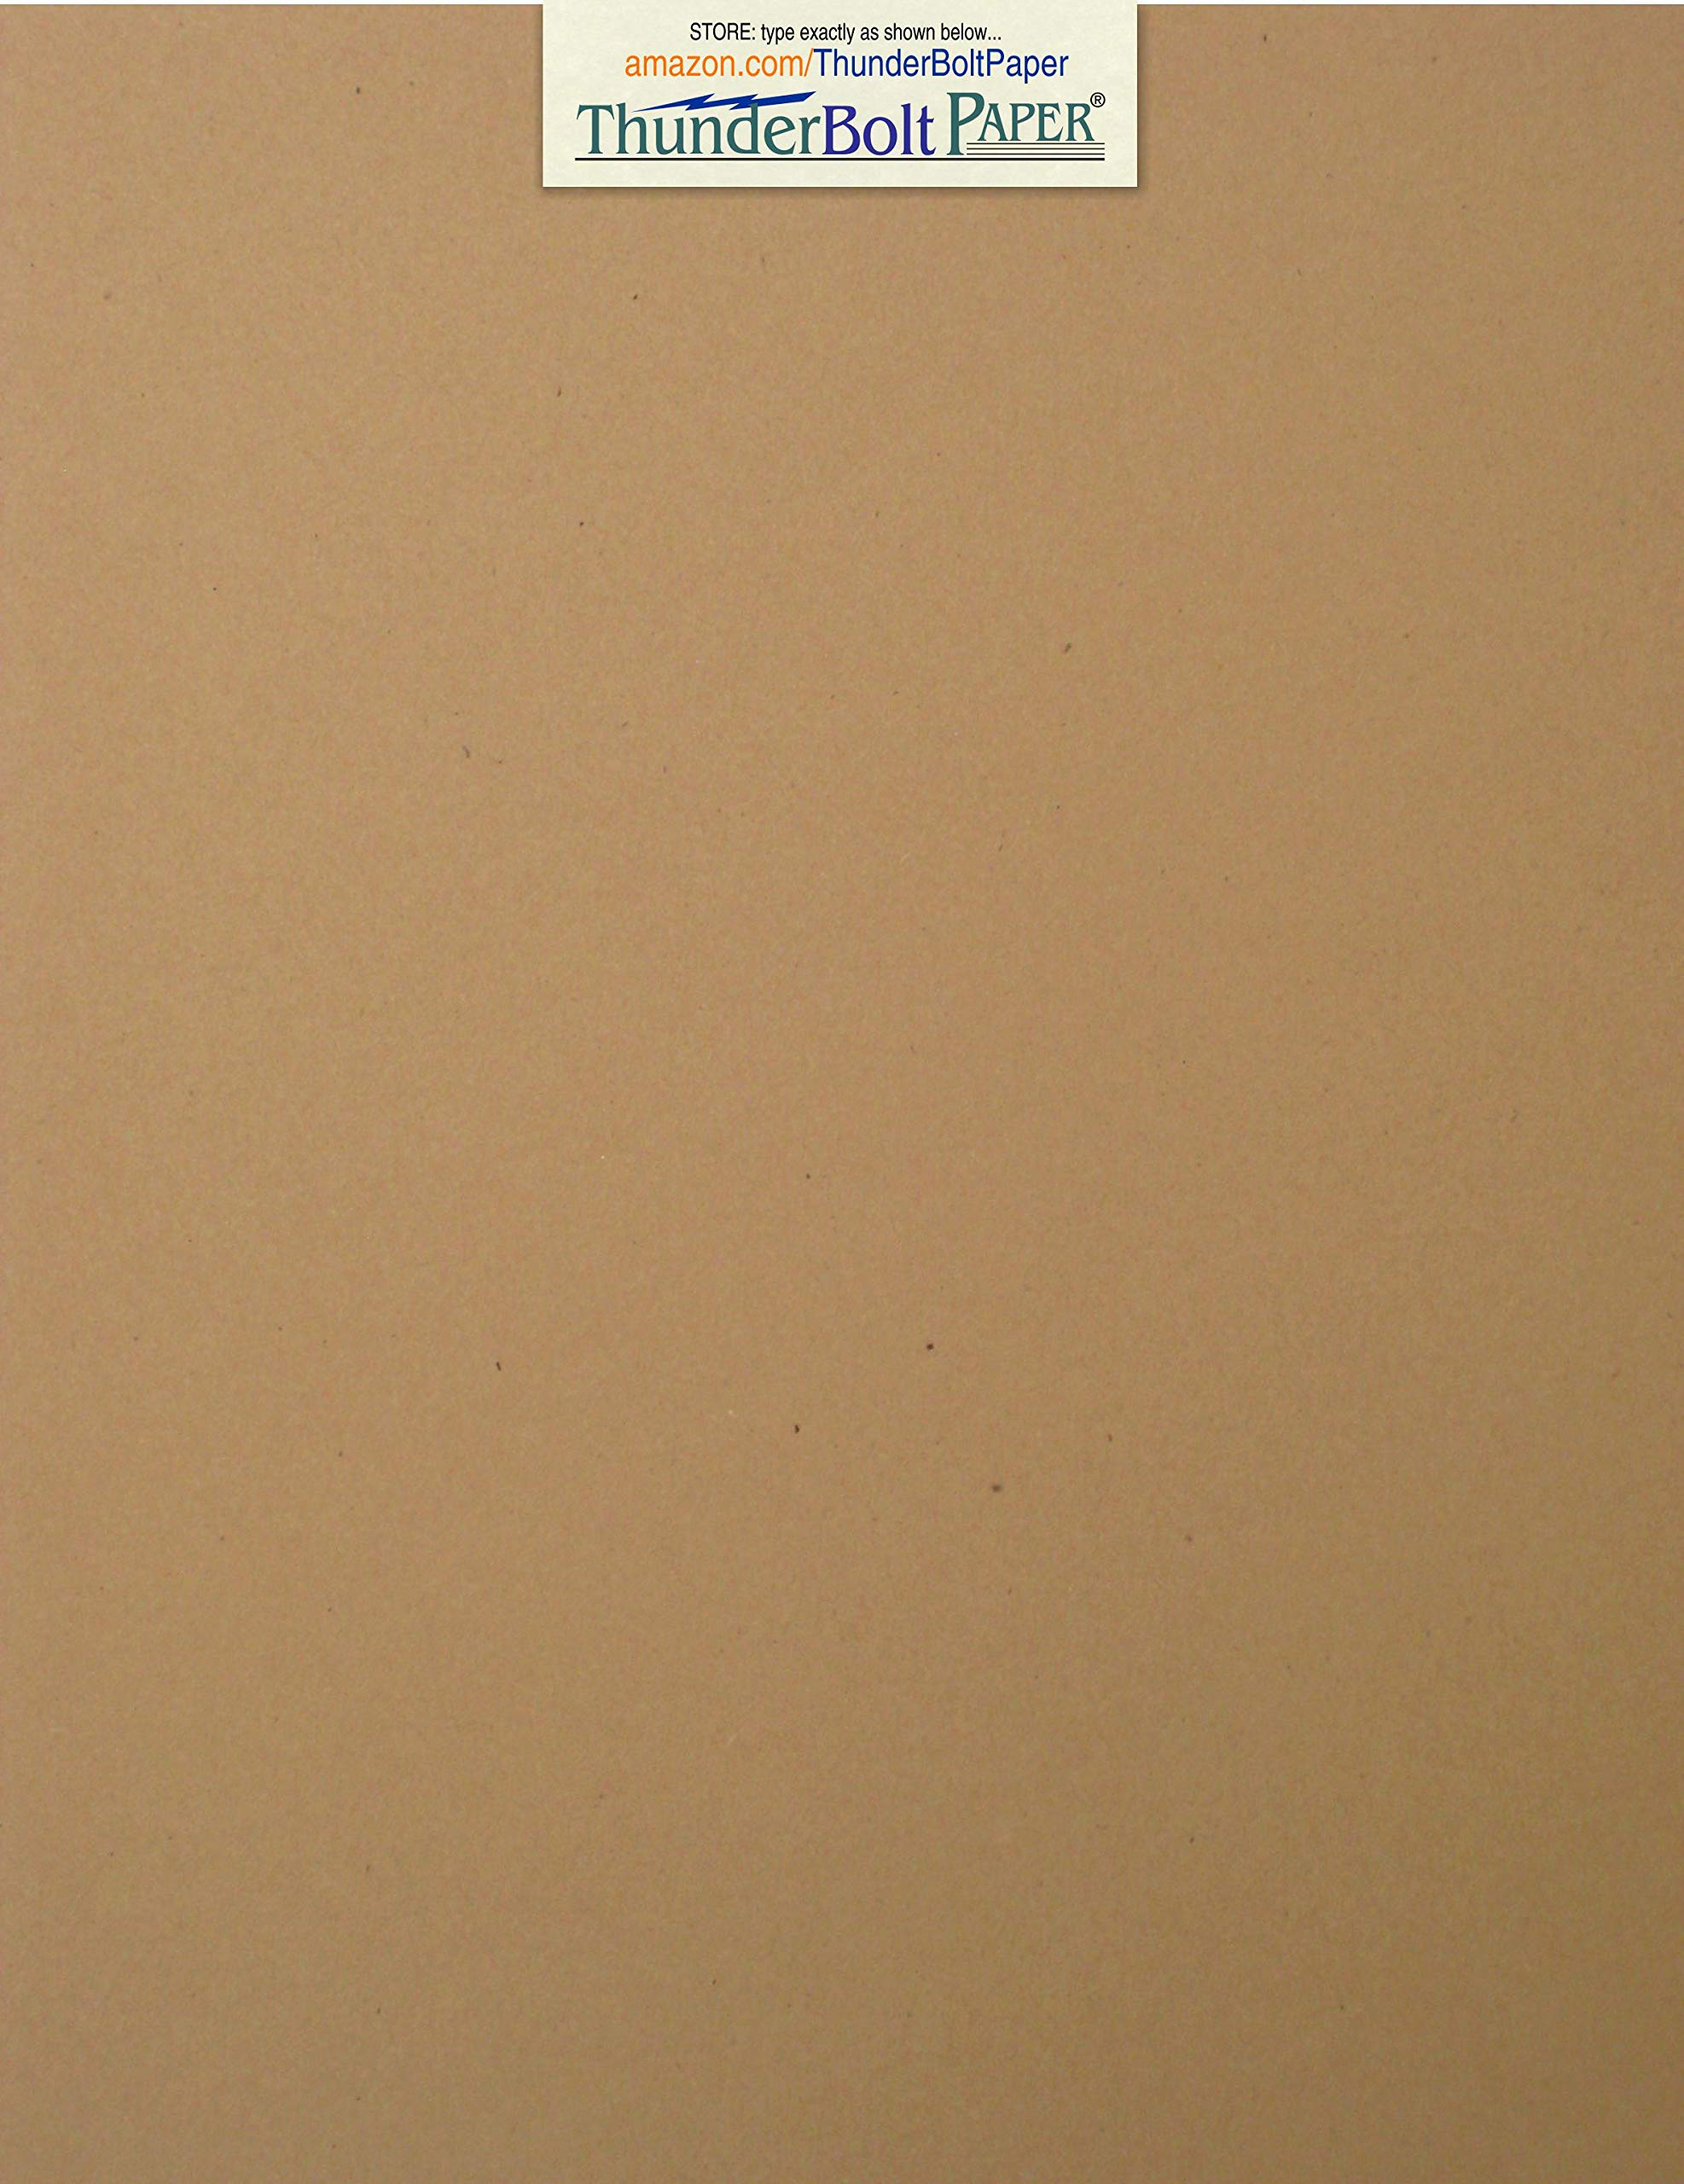 1000 Brown Kraft Fiber 28/70# Text (NOT card/cover) Paper Sheets - 8.5'' X 11'' - 70lb/pound Weight (8.5X11 Inches) Standard Letter|Flyer Size - Rich Earthy Color with Natural Fibers - Smooth Finish